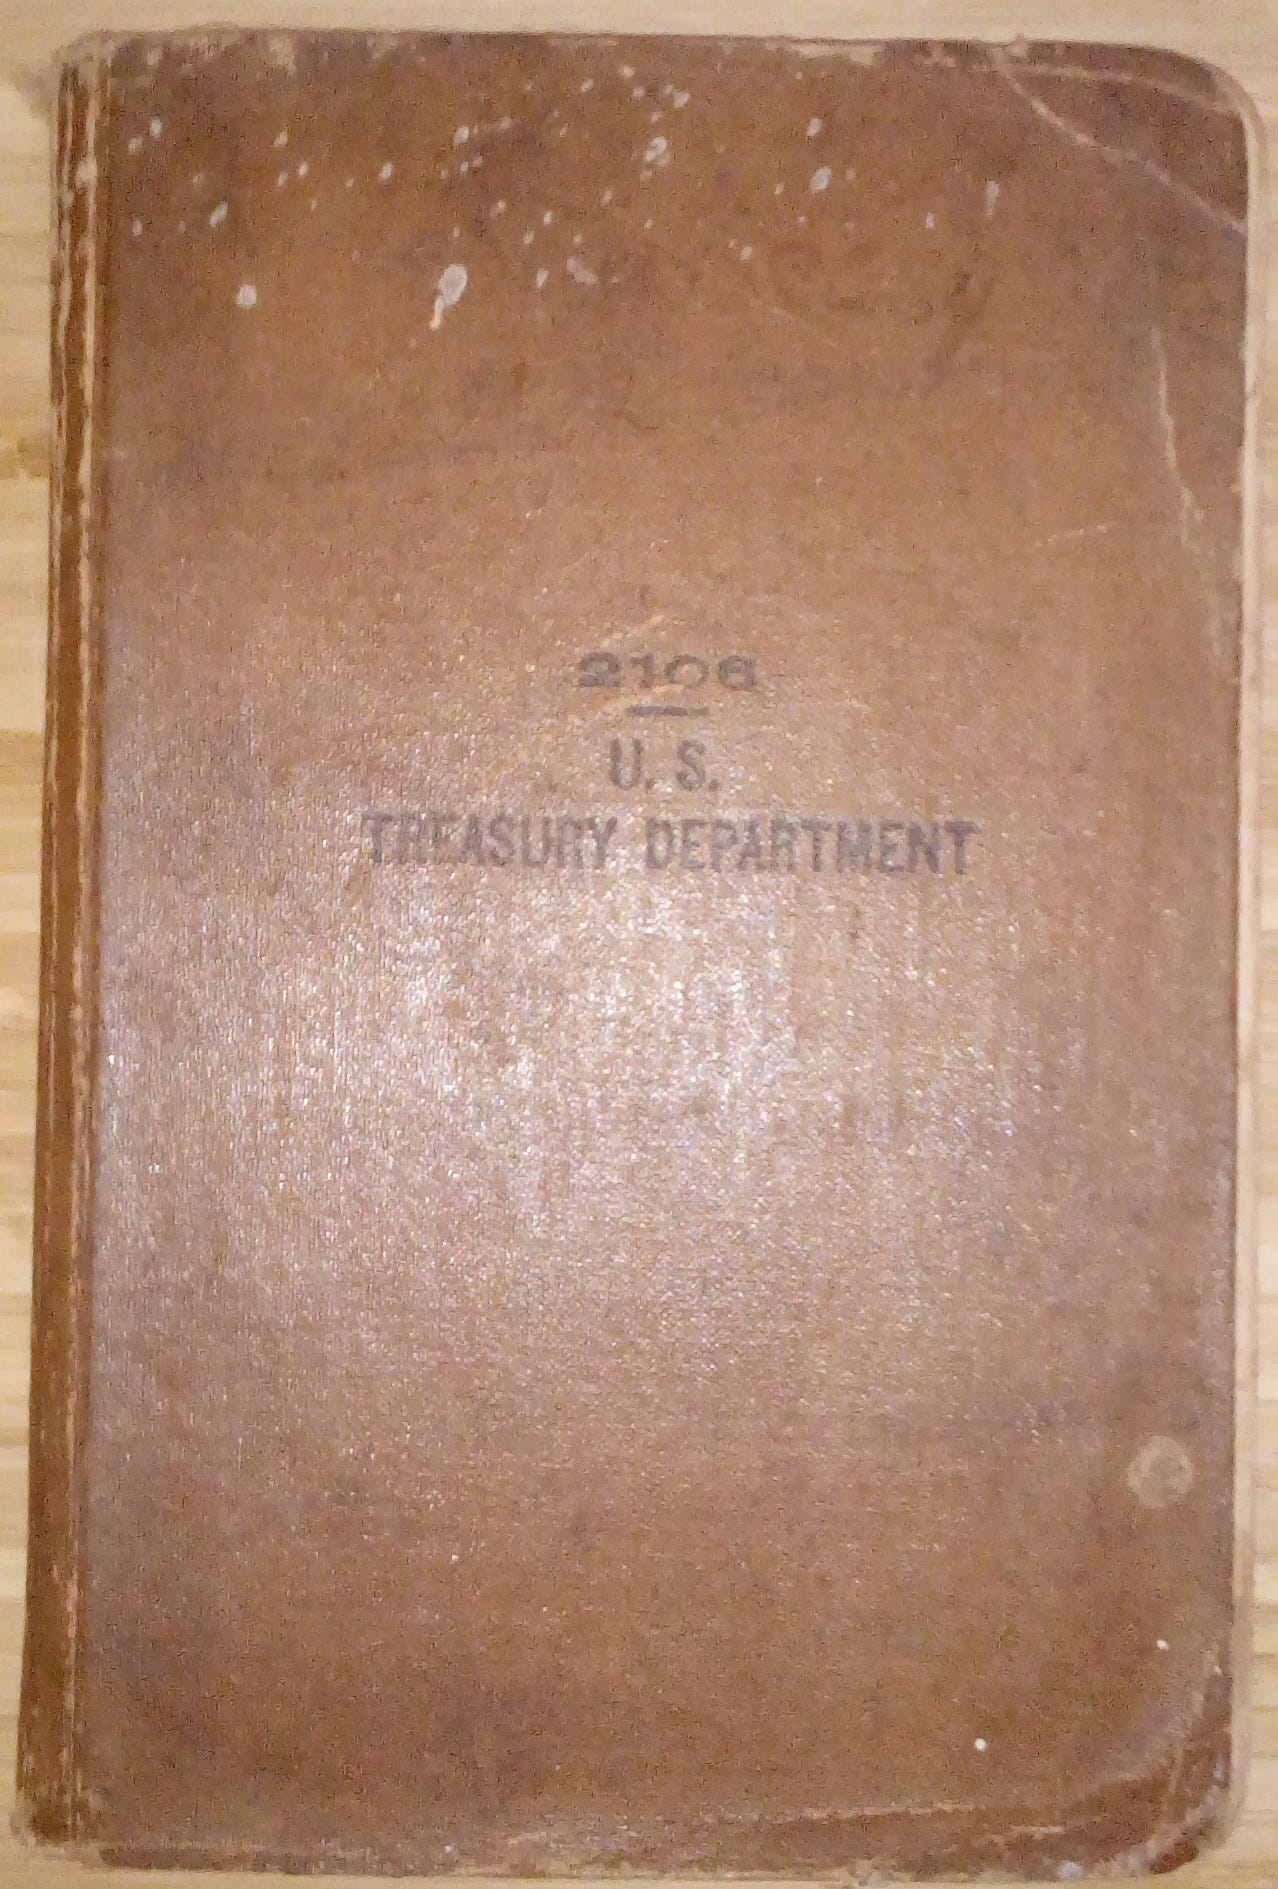 """Photograph of a brown book with the words """"2106 – U.S. Treasury Department"""" printed on it in black"""